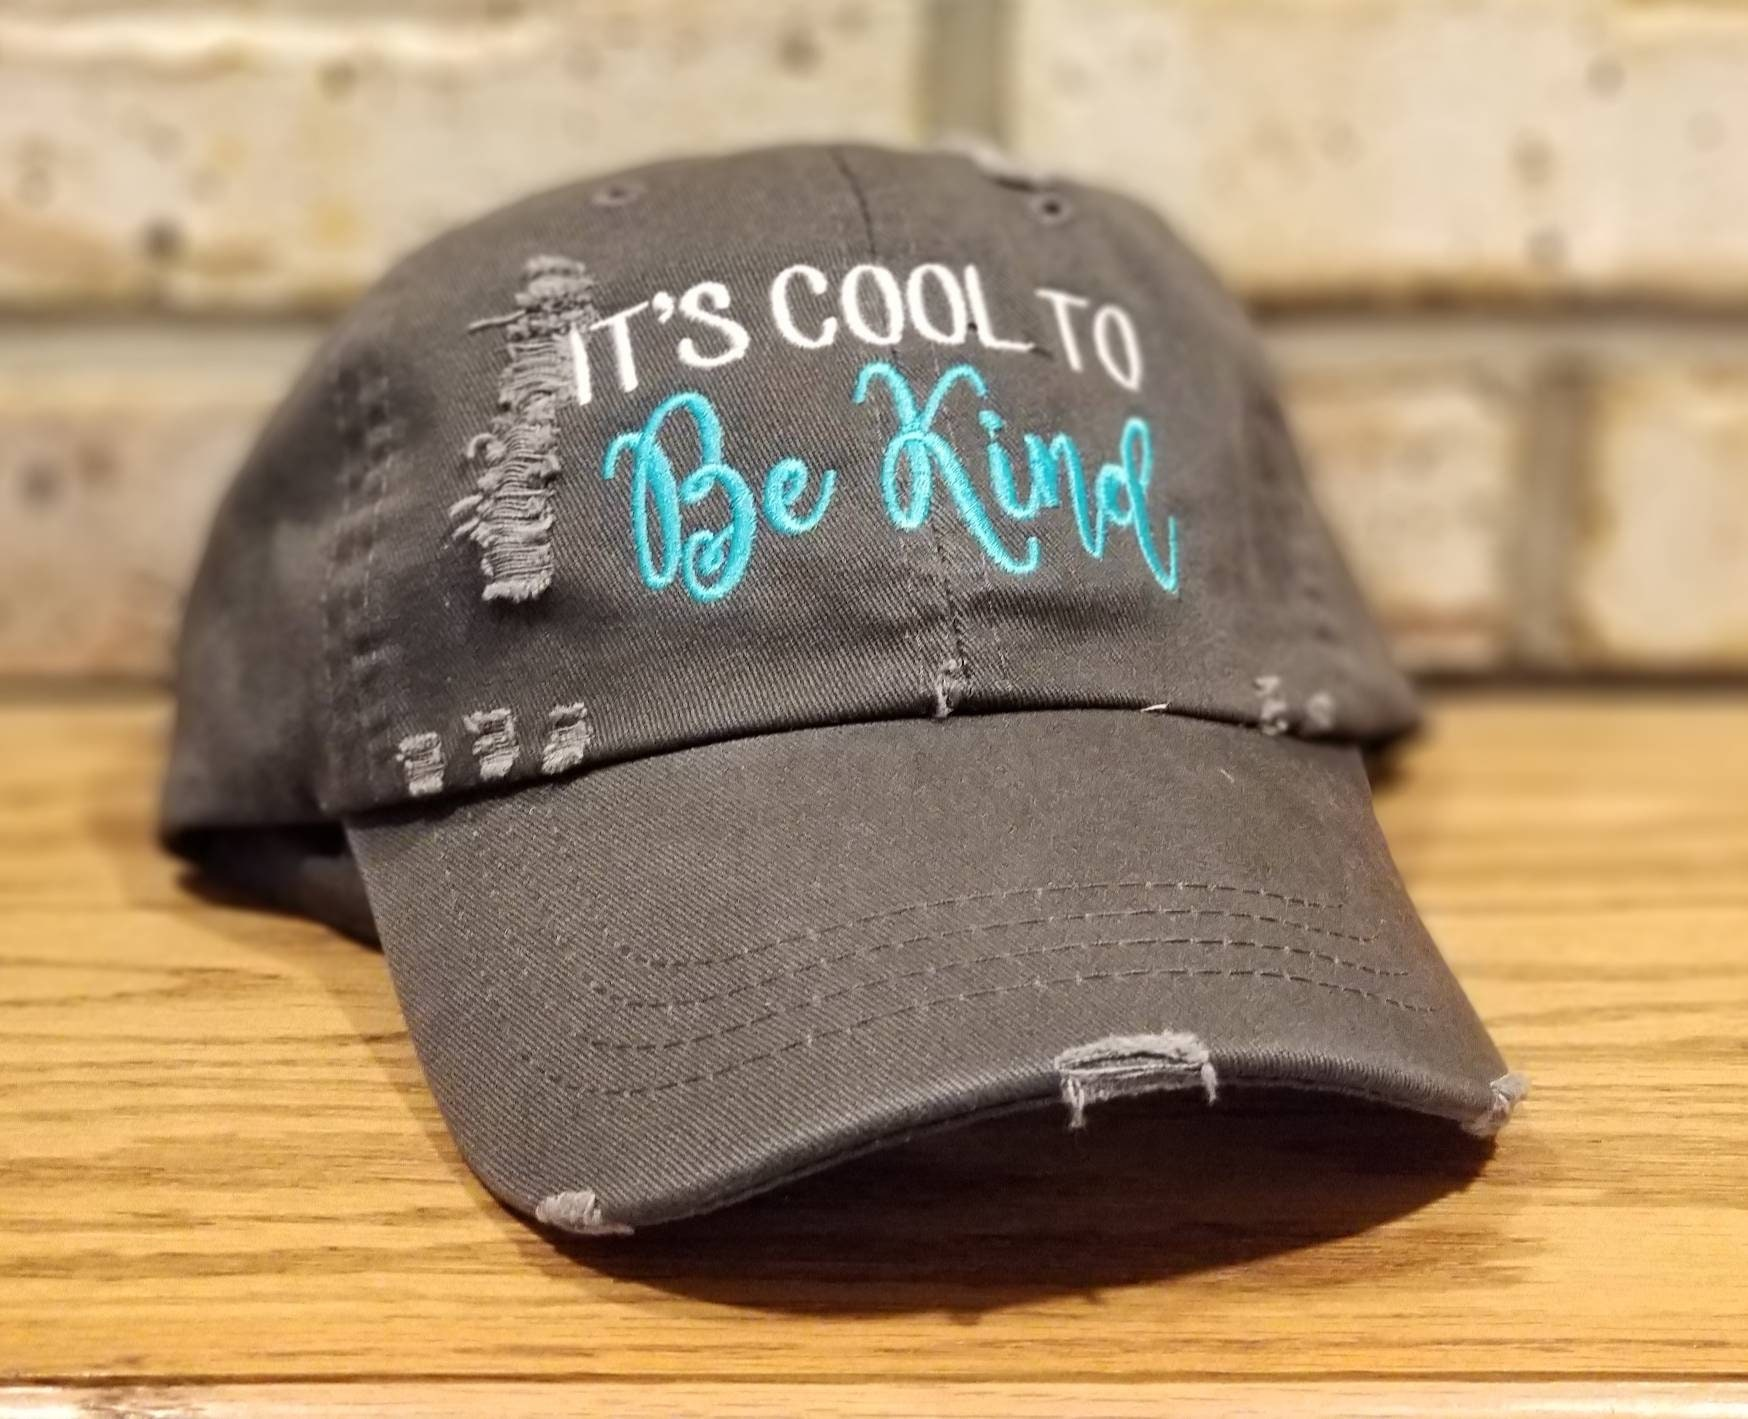 8a5983448 It's Cool To Be Kind Hat - Embroidered Kindness Baseball Cap, Stop  Bullying, Anti Bully, Custom Designed Hats, Friendship Ball Caps